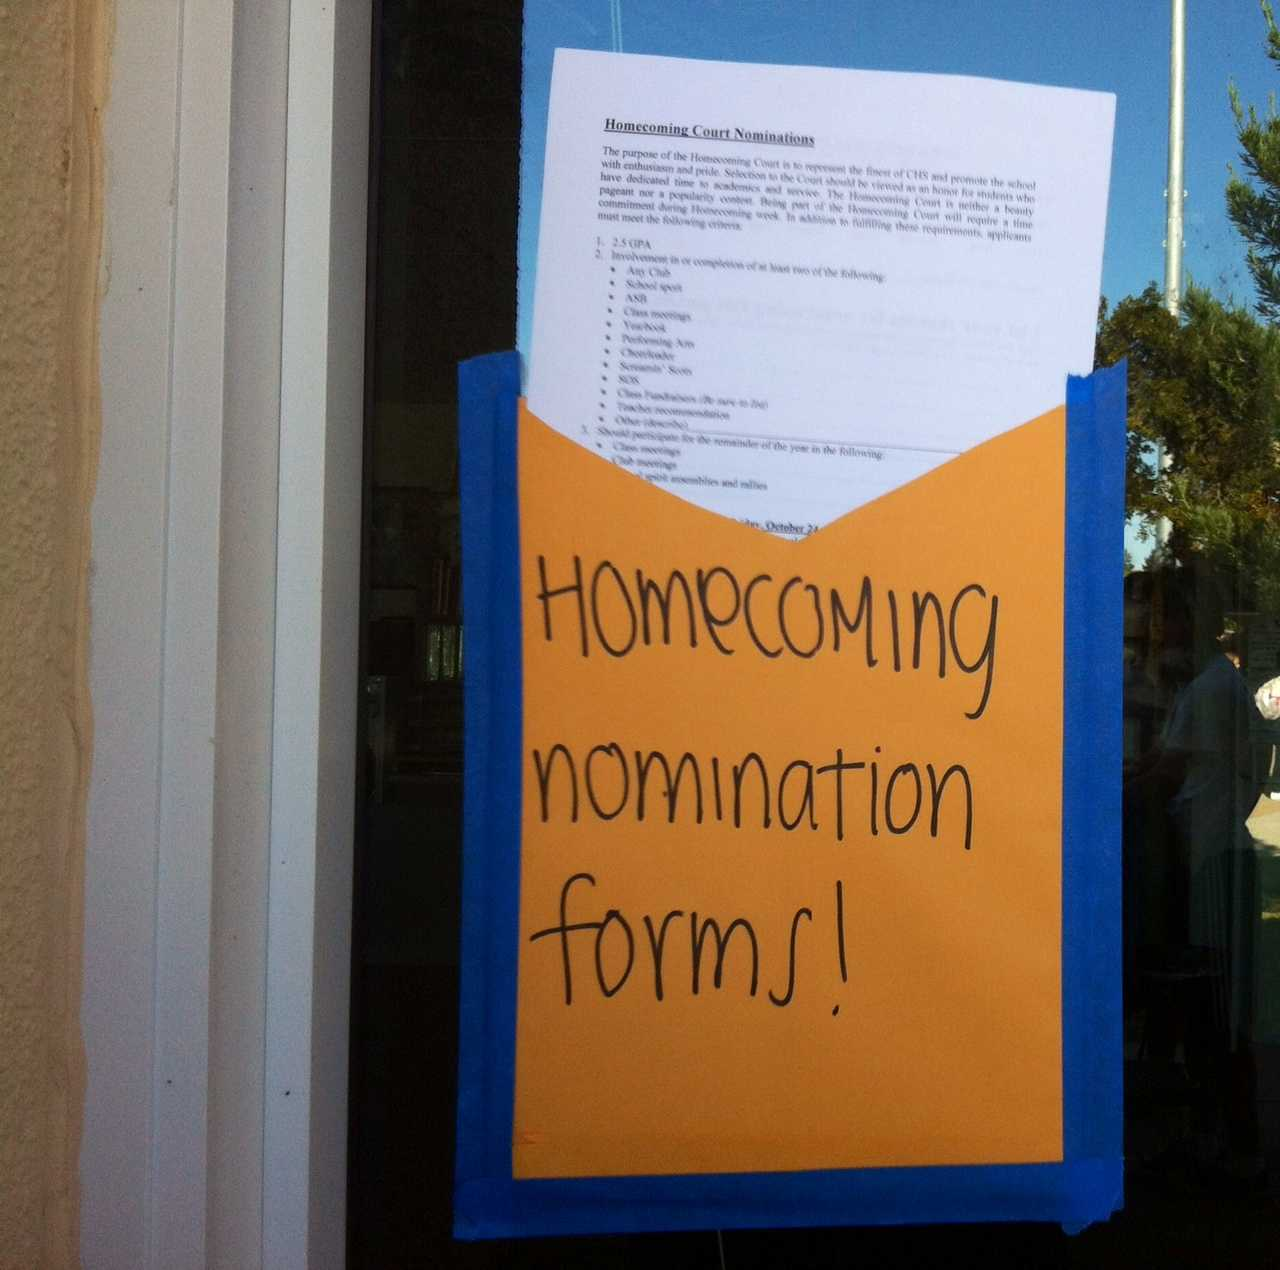 Get involved and nominate someone for Homecoming Court. You can fins them in this envelope outside the ASB room A-8.